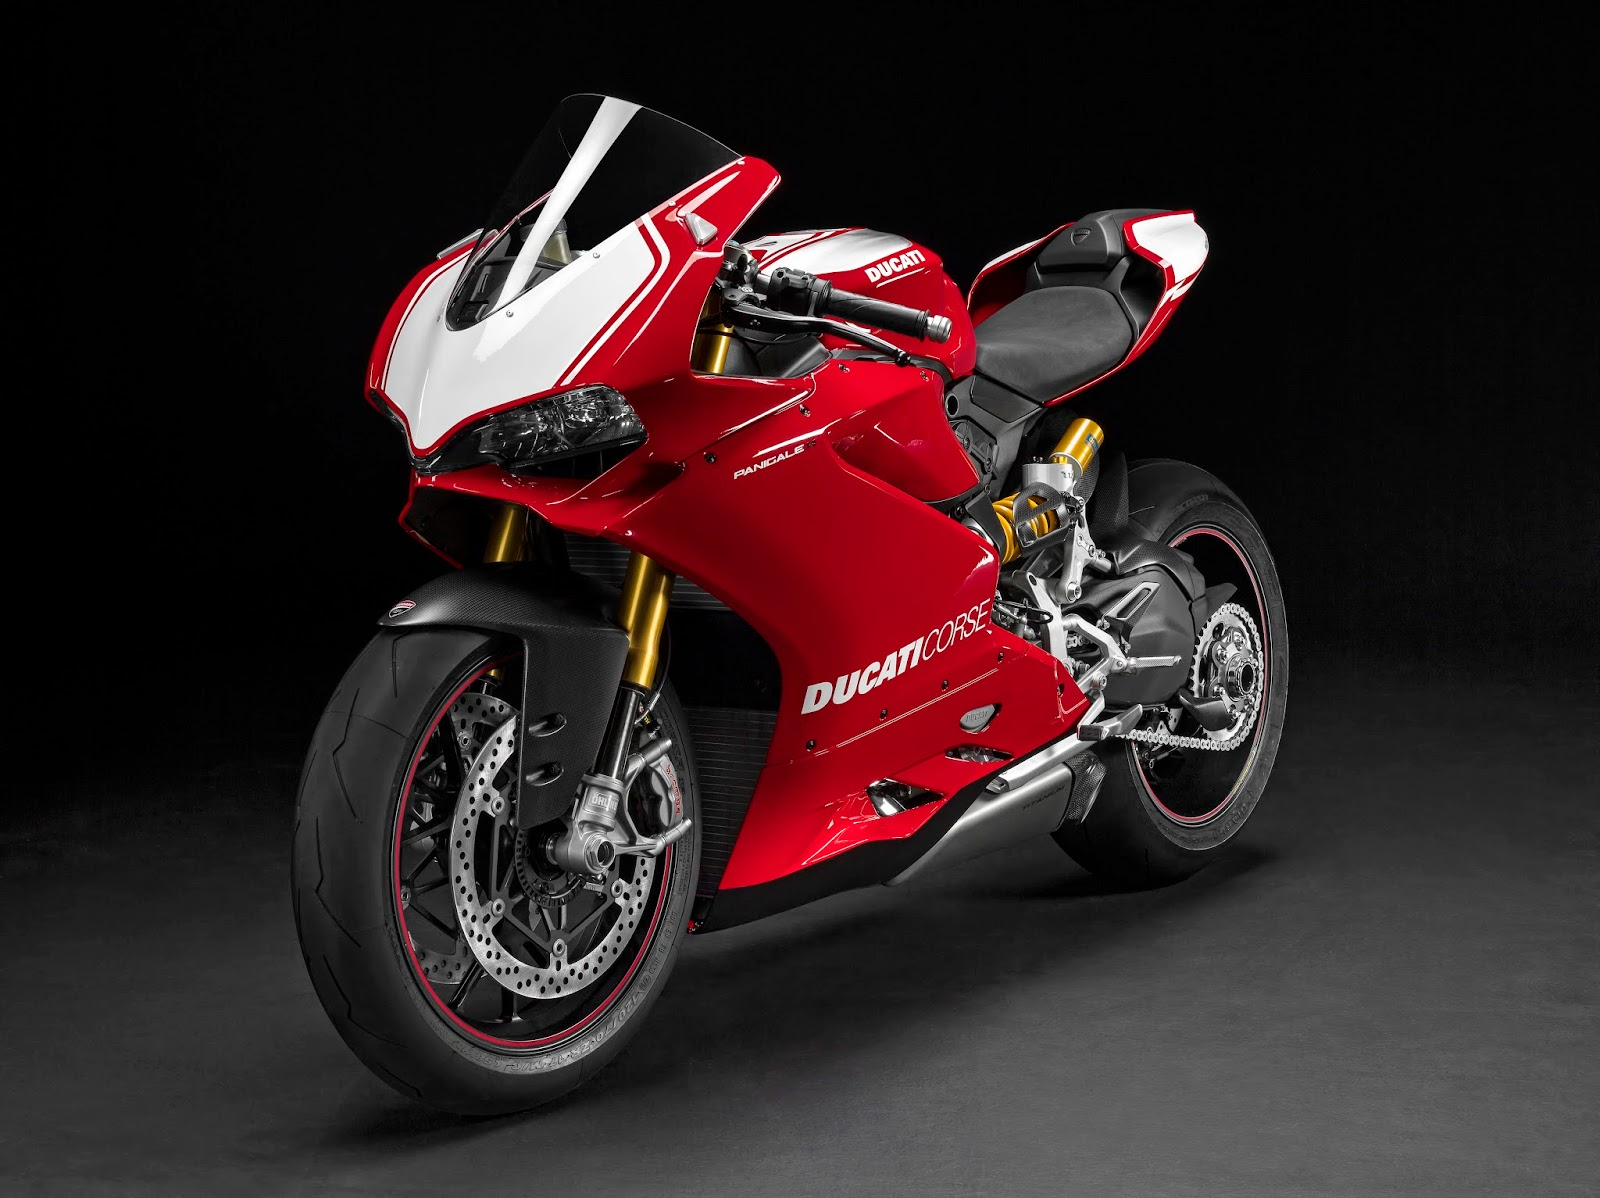 racing caf ducati 1199 panigale r 2015 1. Black Bedroom Furniture Sets. Home Design Ideas